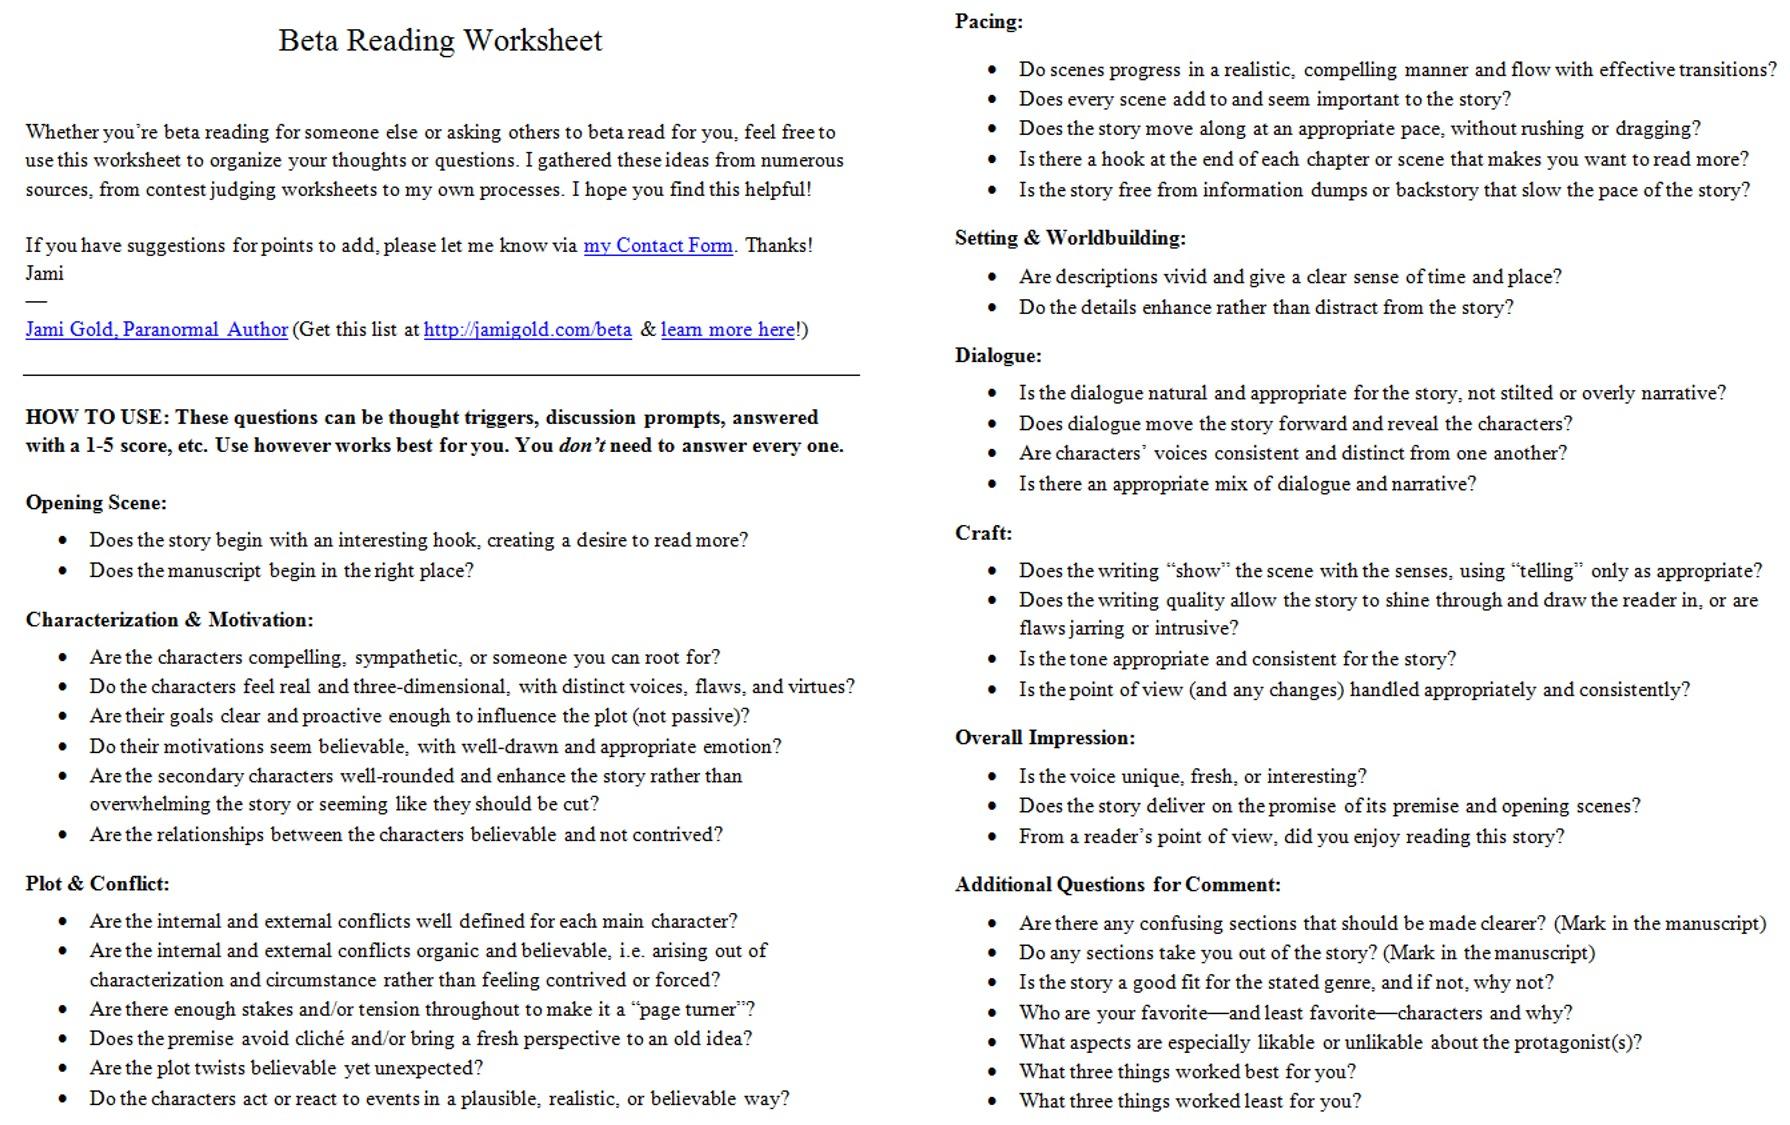 Proatmealus  Nice Worksheets For Writers  Jami Gold Paranormal Author With Foxy Screen Shot Of The Twopage Beta Reading Worksheet With Easy On The Eye Punctuation Worksheets Also Greater Than Less Than Worksheets In Addition Similar Figures Worksheet And Perimeter Worksheets As Well As Rd Grade Worksheets Additionally Fact And Opinion Worksheets From Jamigoldcom With Proatmealus  Foxy Worksheets For Writers  Jami Gold Paranormal Author With Easy On The Eye Screen Shot Of The Twopage Beta Reading Worksheet And Nice Punctuation Worksheets Also Greater Than Less Than Worksheets In Addition Similar Figures Worksheet From Jamigoldcom